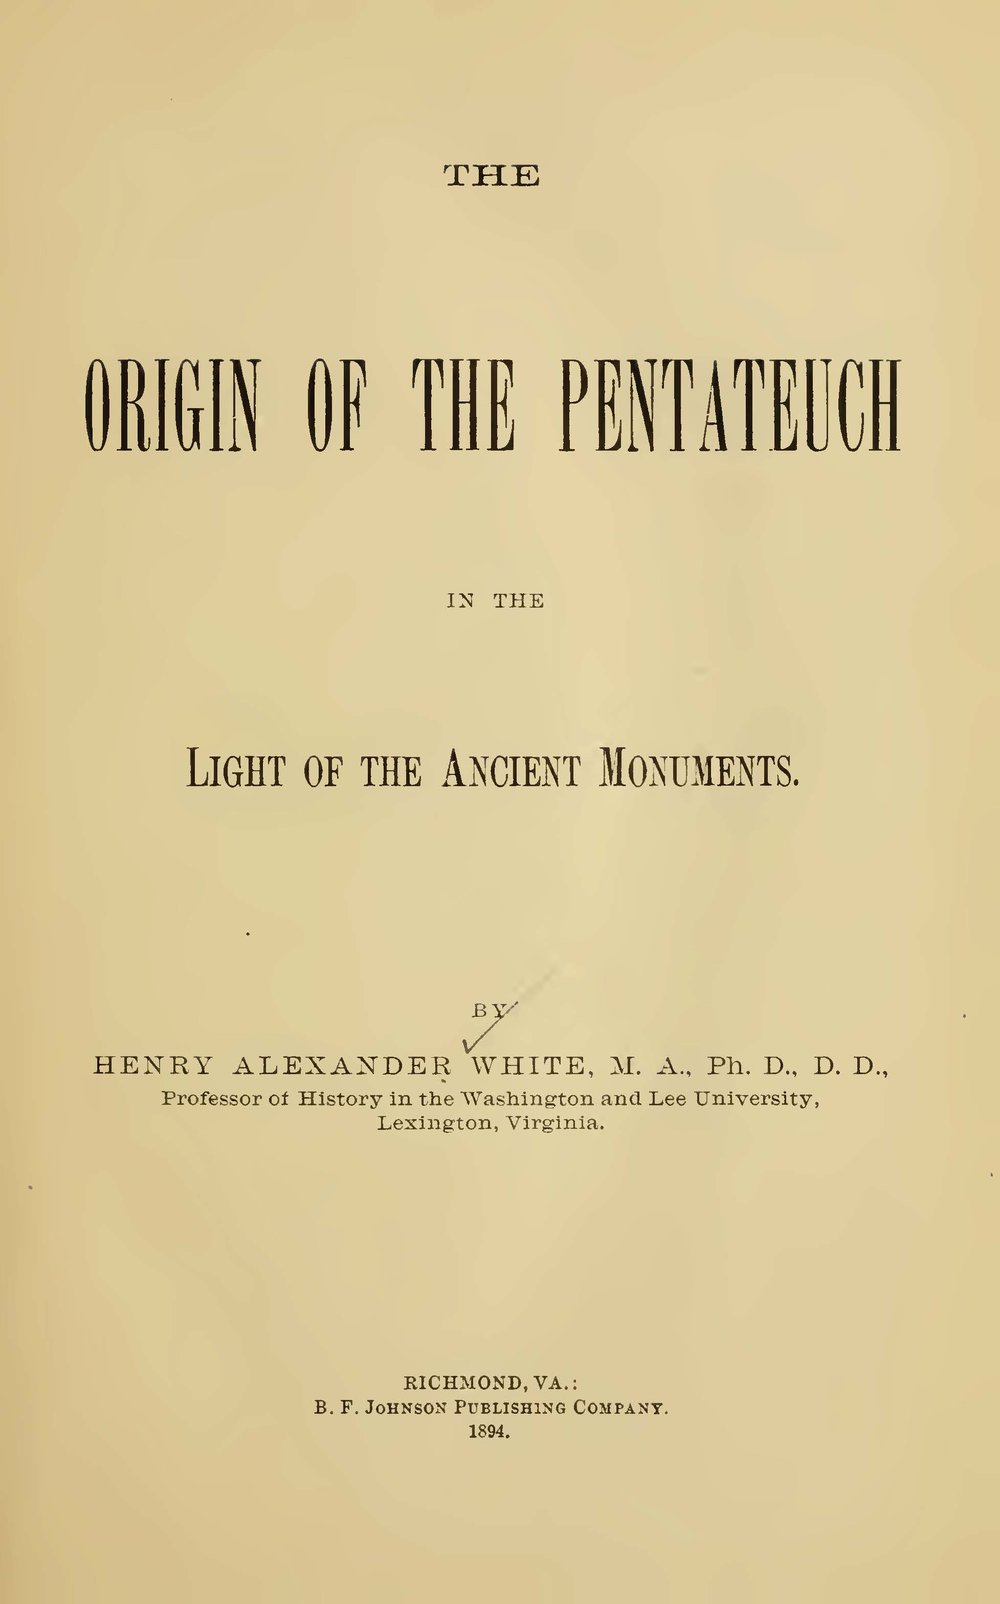 White, Henry Alexander, The Origin of the Pentateuch in the Light of the Ancient Monuments Title Page.jpg